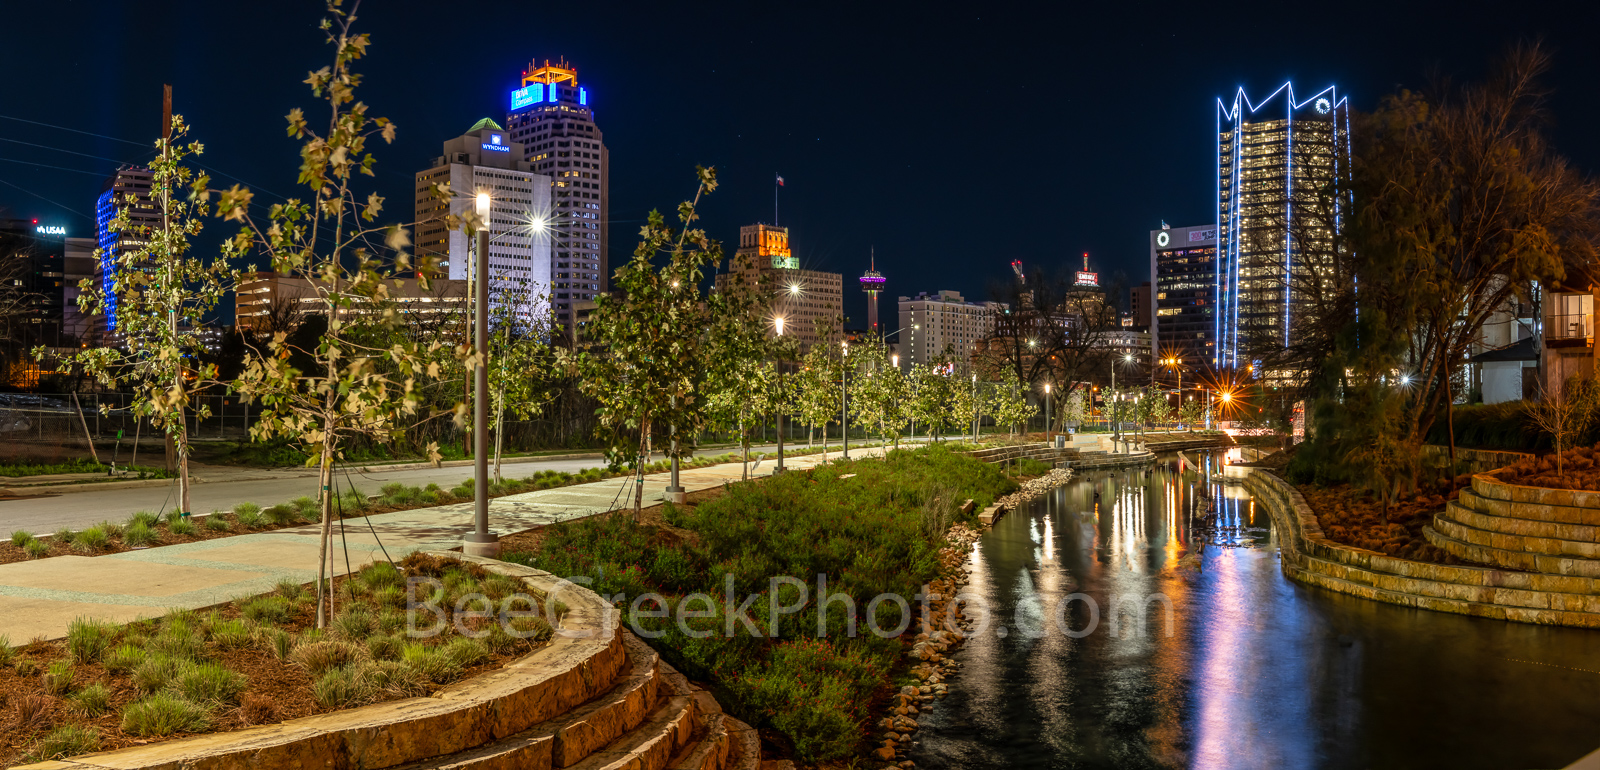 San Antonio Skyline,  San antonio, Frost Tower,  San Pedro Creek, san antonio images, san antonio skyline pictures, san antonio skyline photos. reflections, water, Tower of Americas, Drury Hotel, Wyda